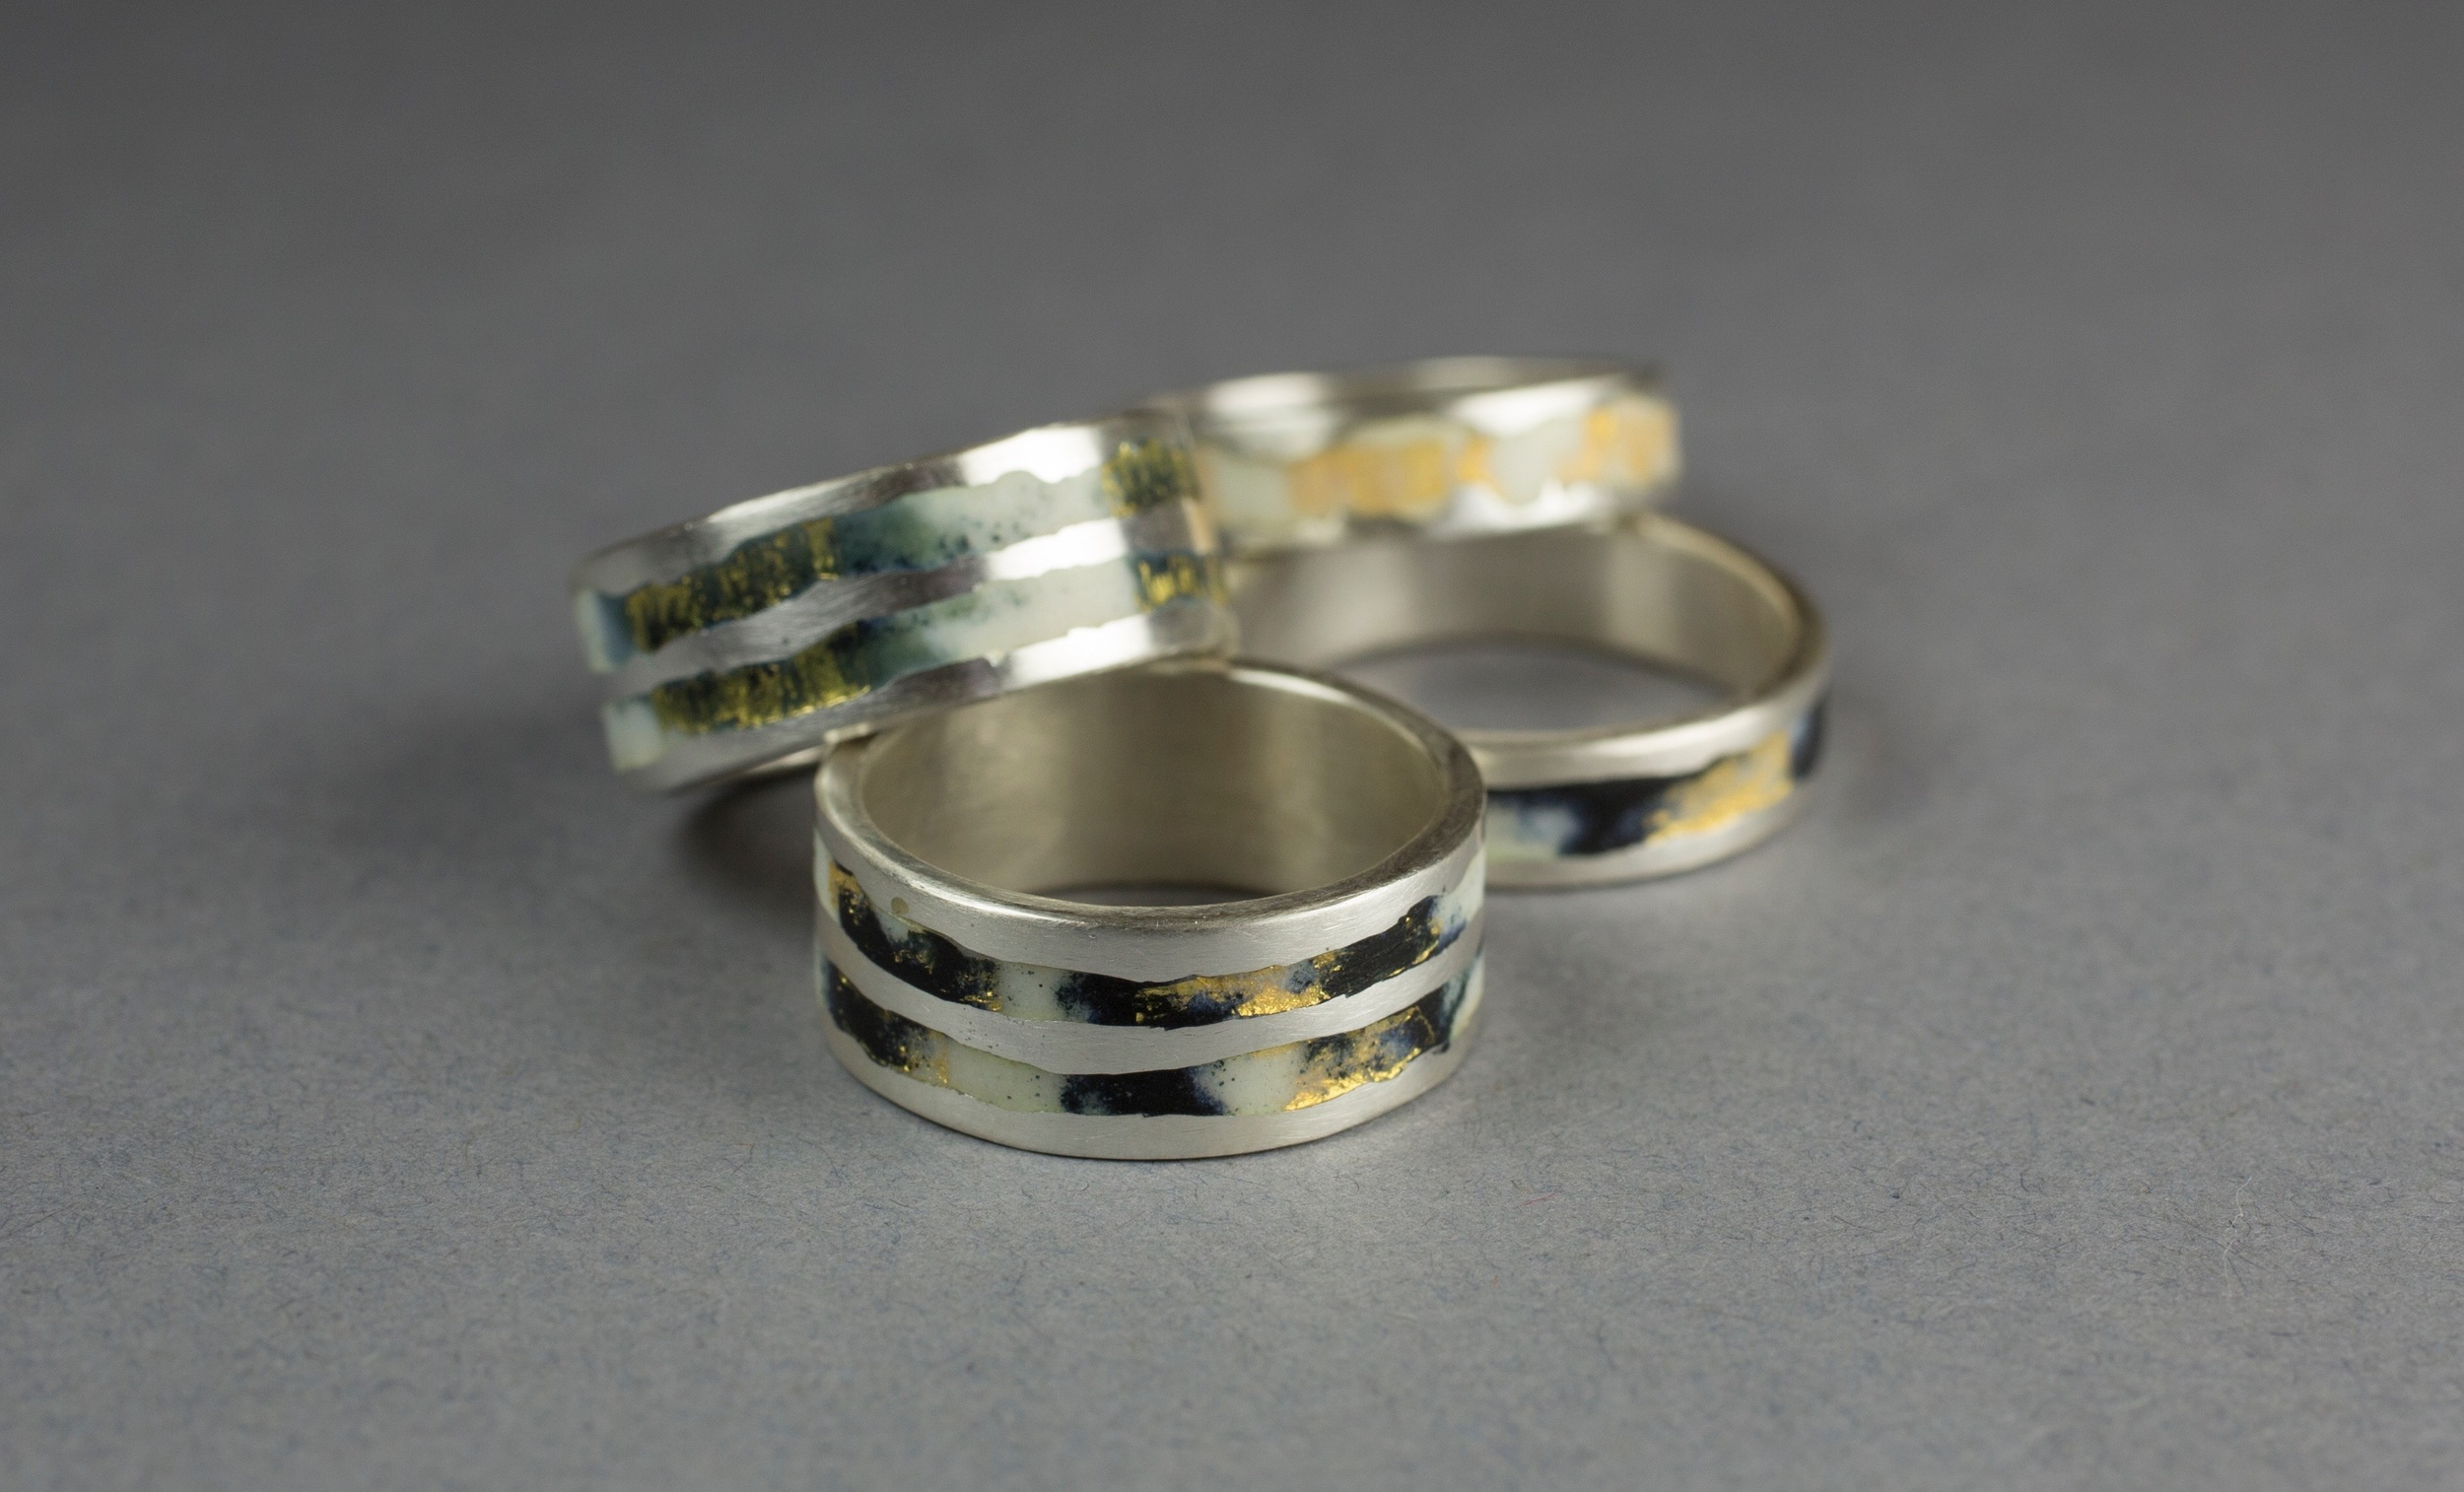 Enamelled rings